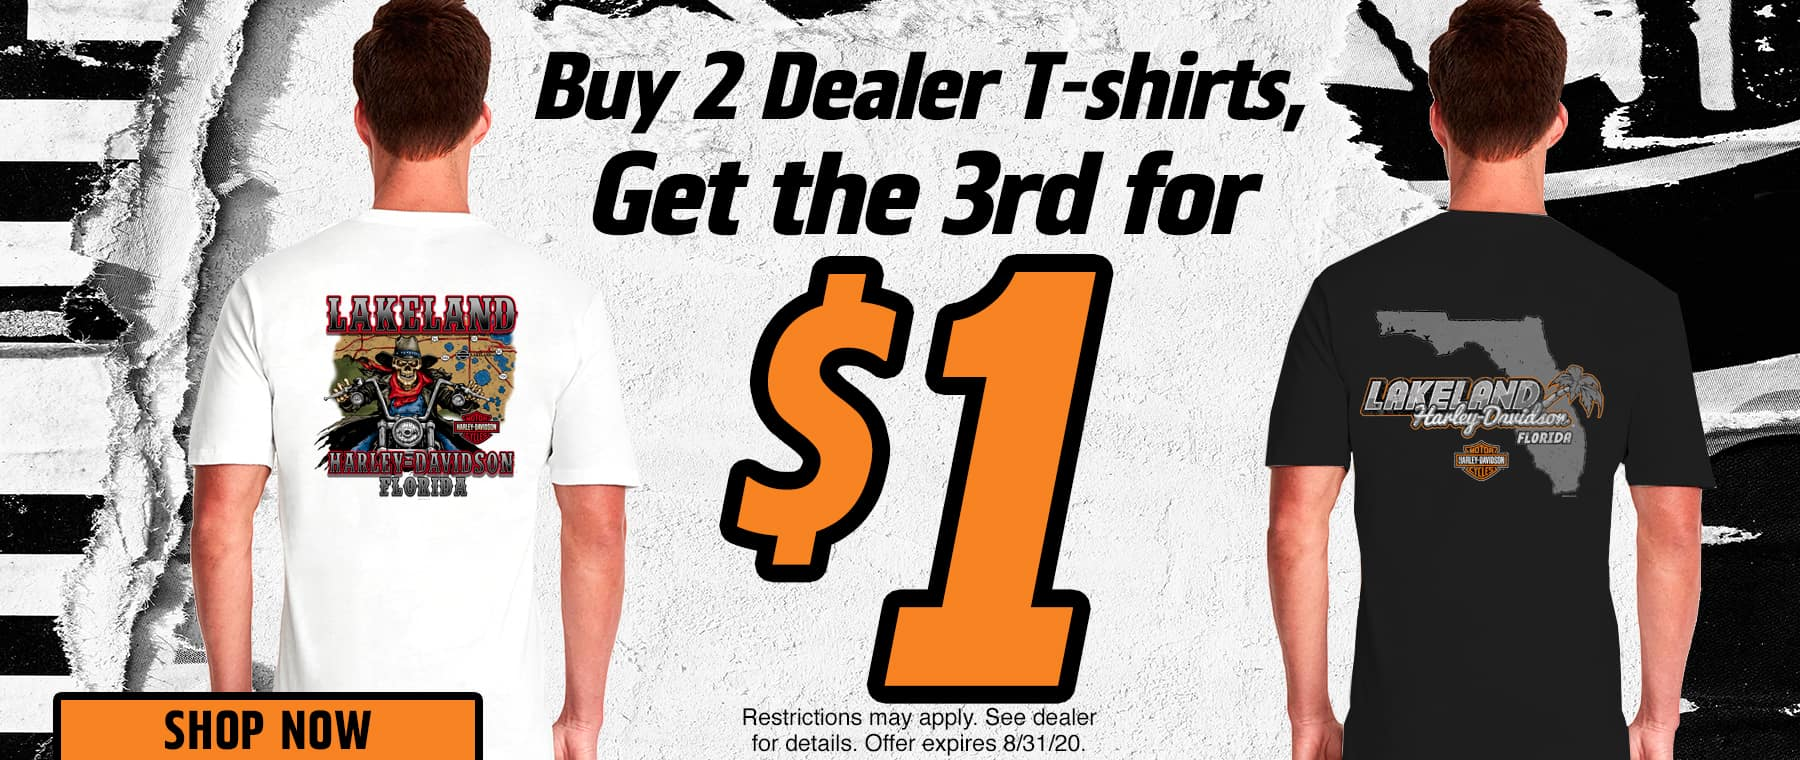 Buy 2 Dealer T-shirts, Get the 3rd for $1